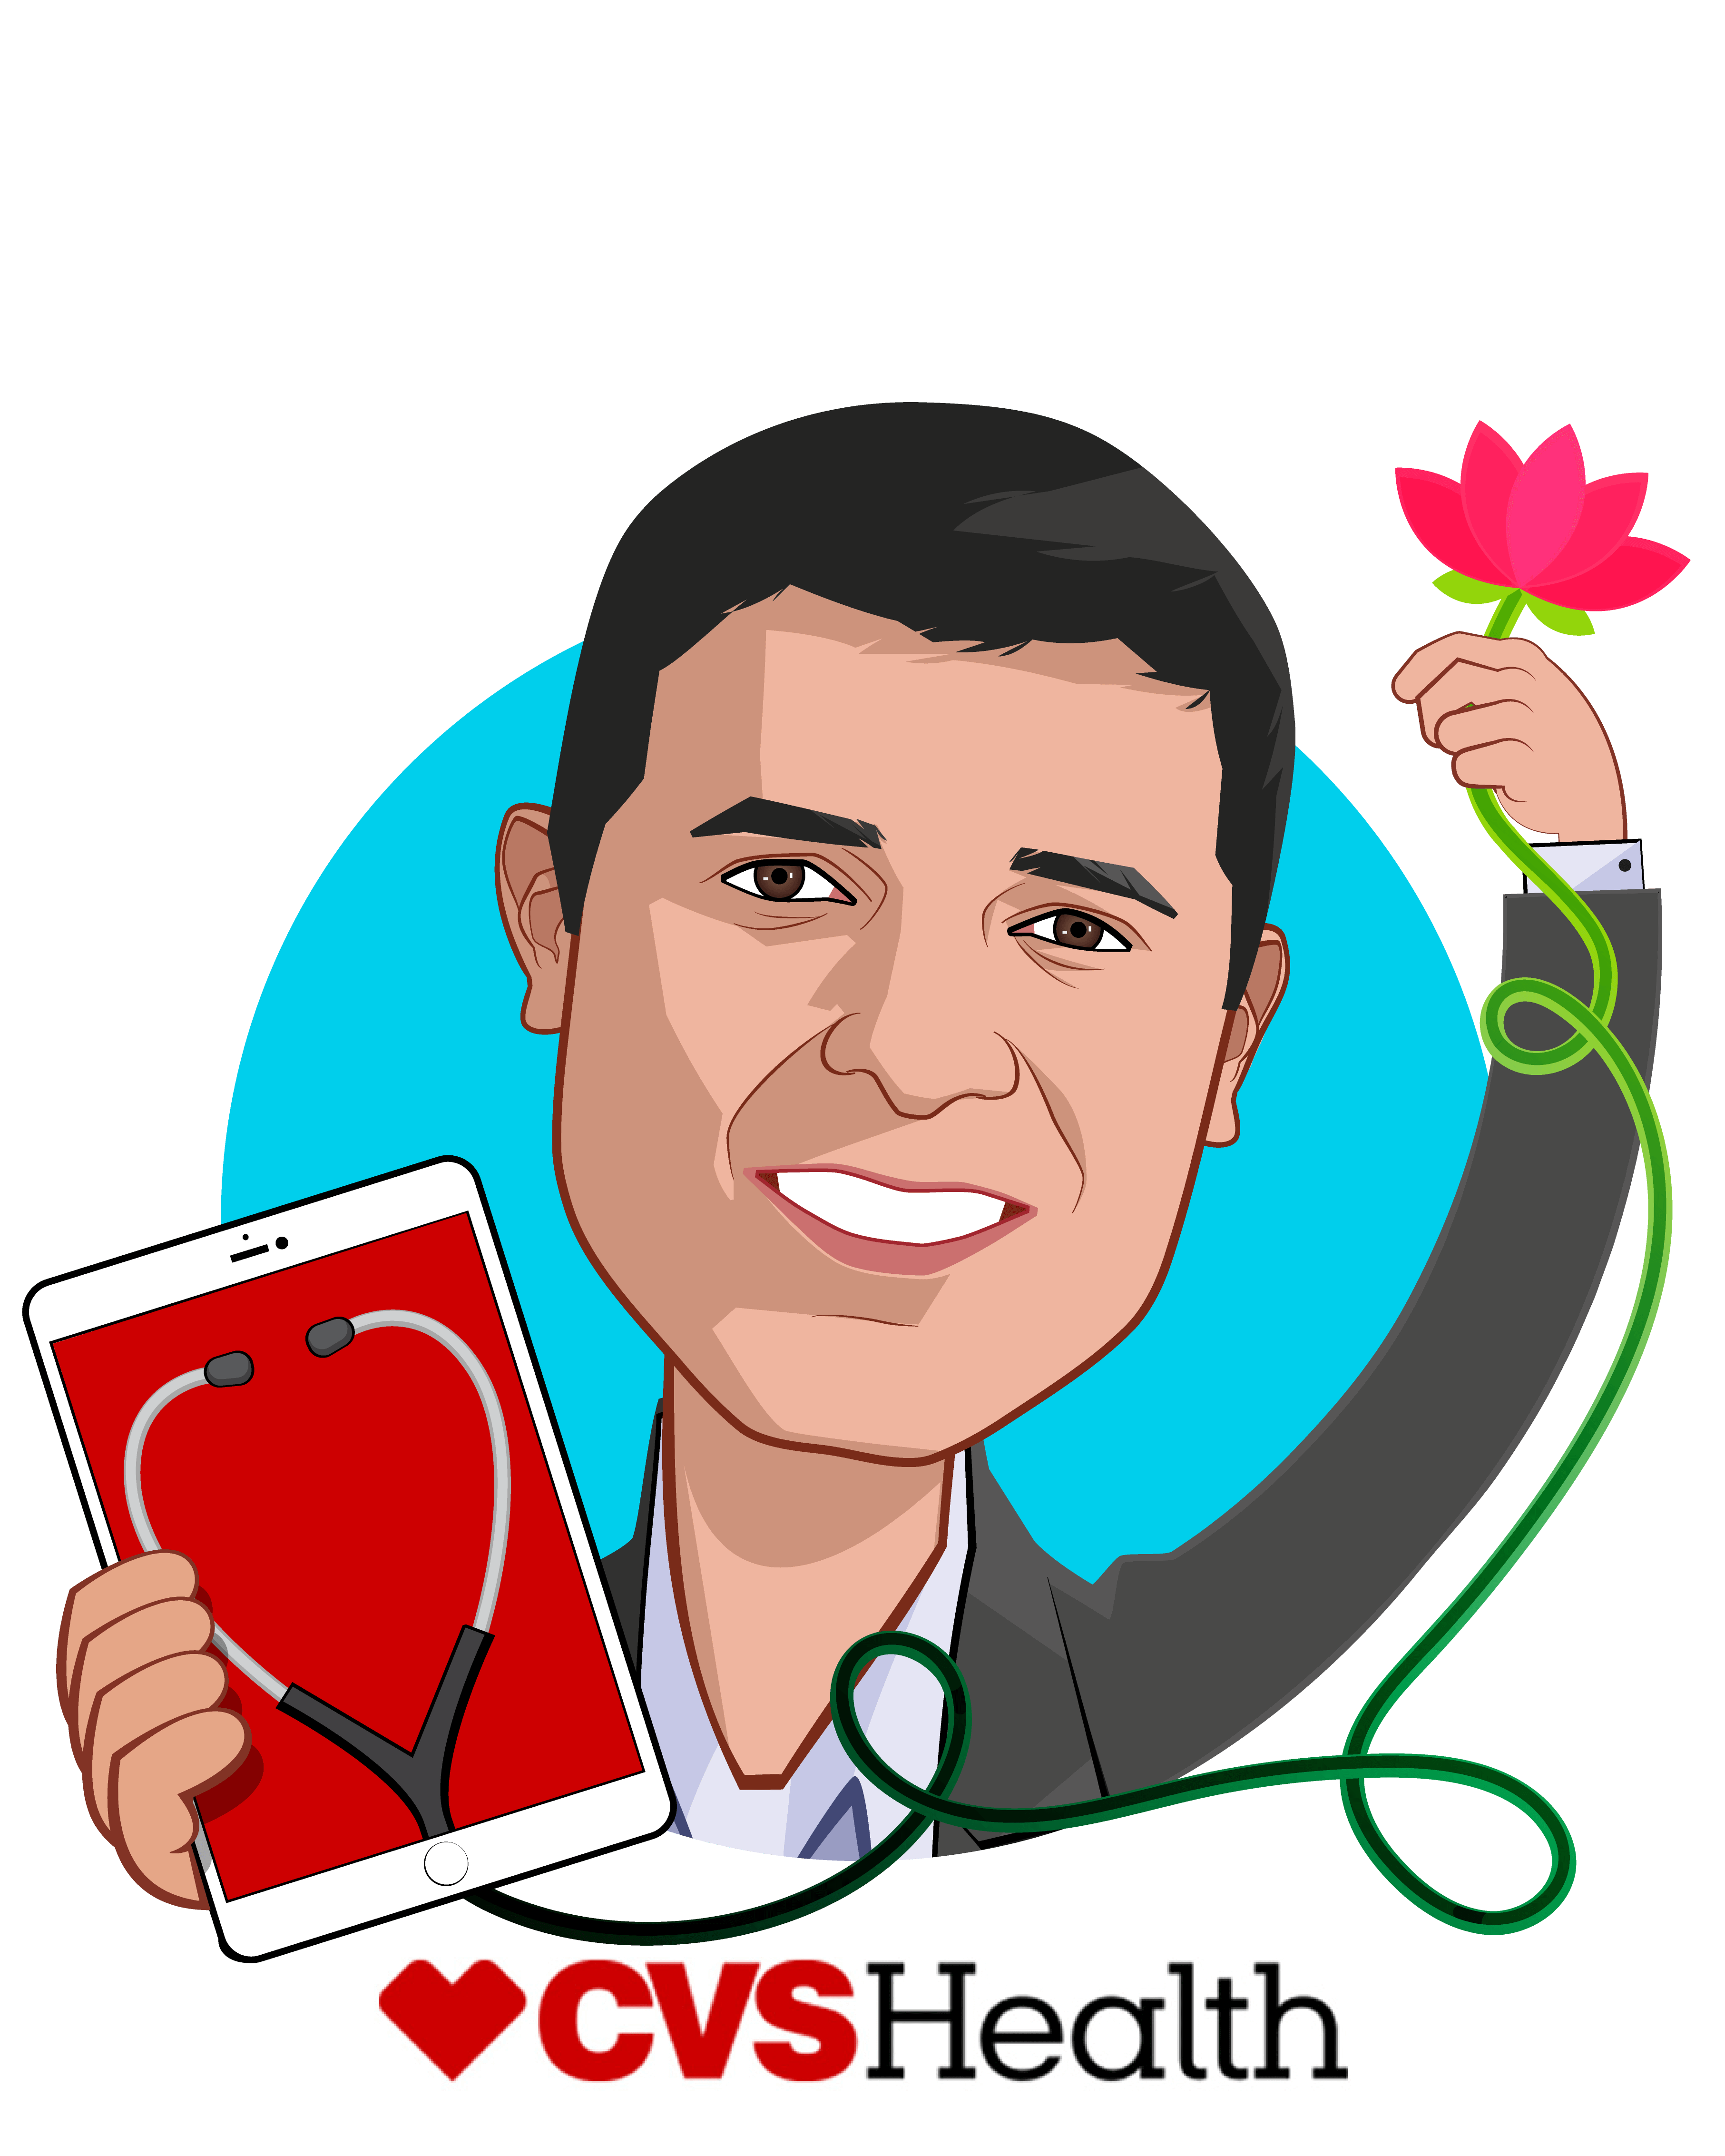 Overlay caricature of Firdaus Bhathena, who is speaking at HLTH and is SVP, Chief Digital Officer at CVS Health